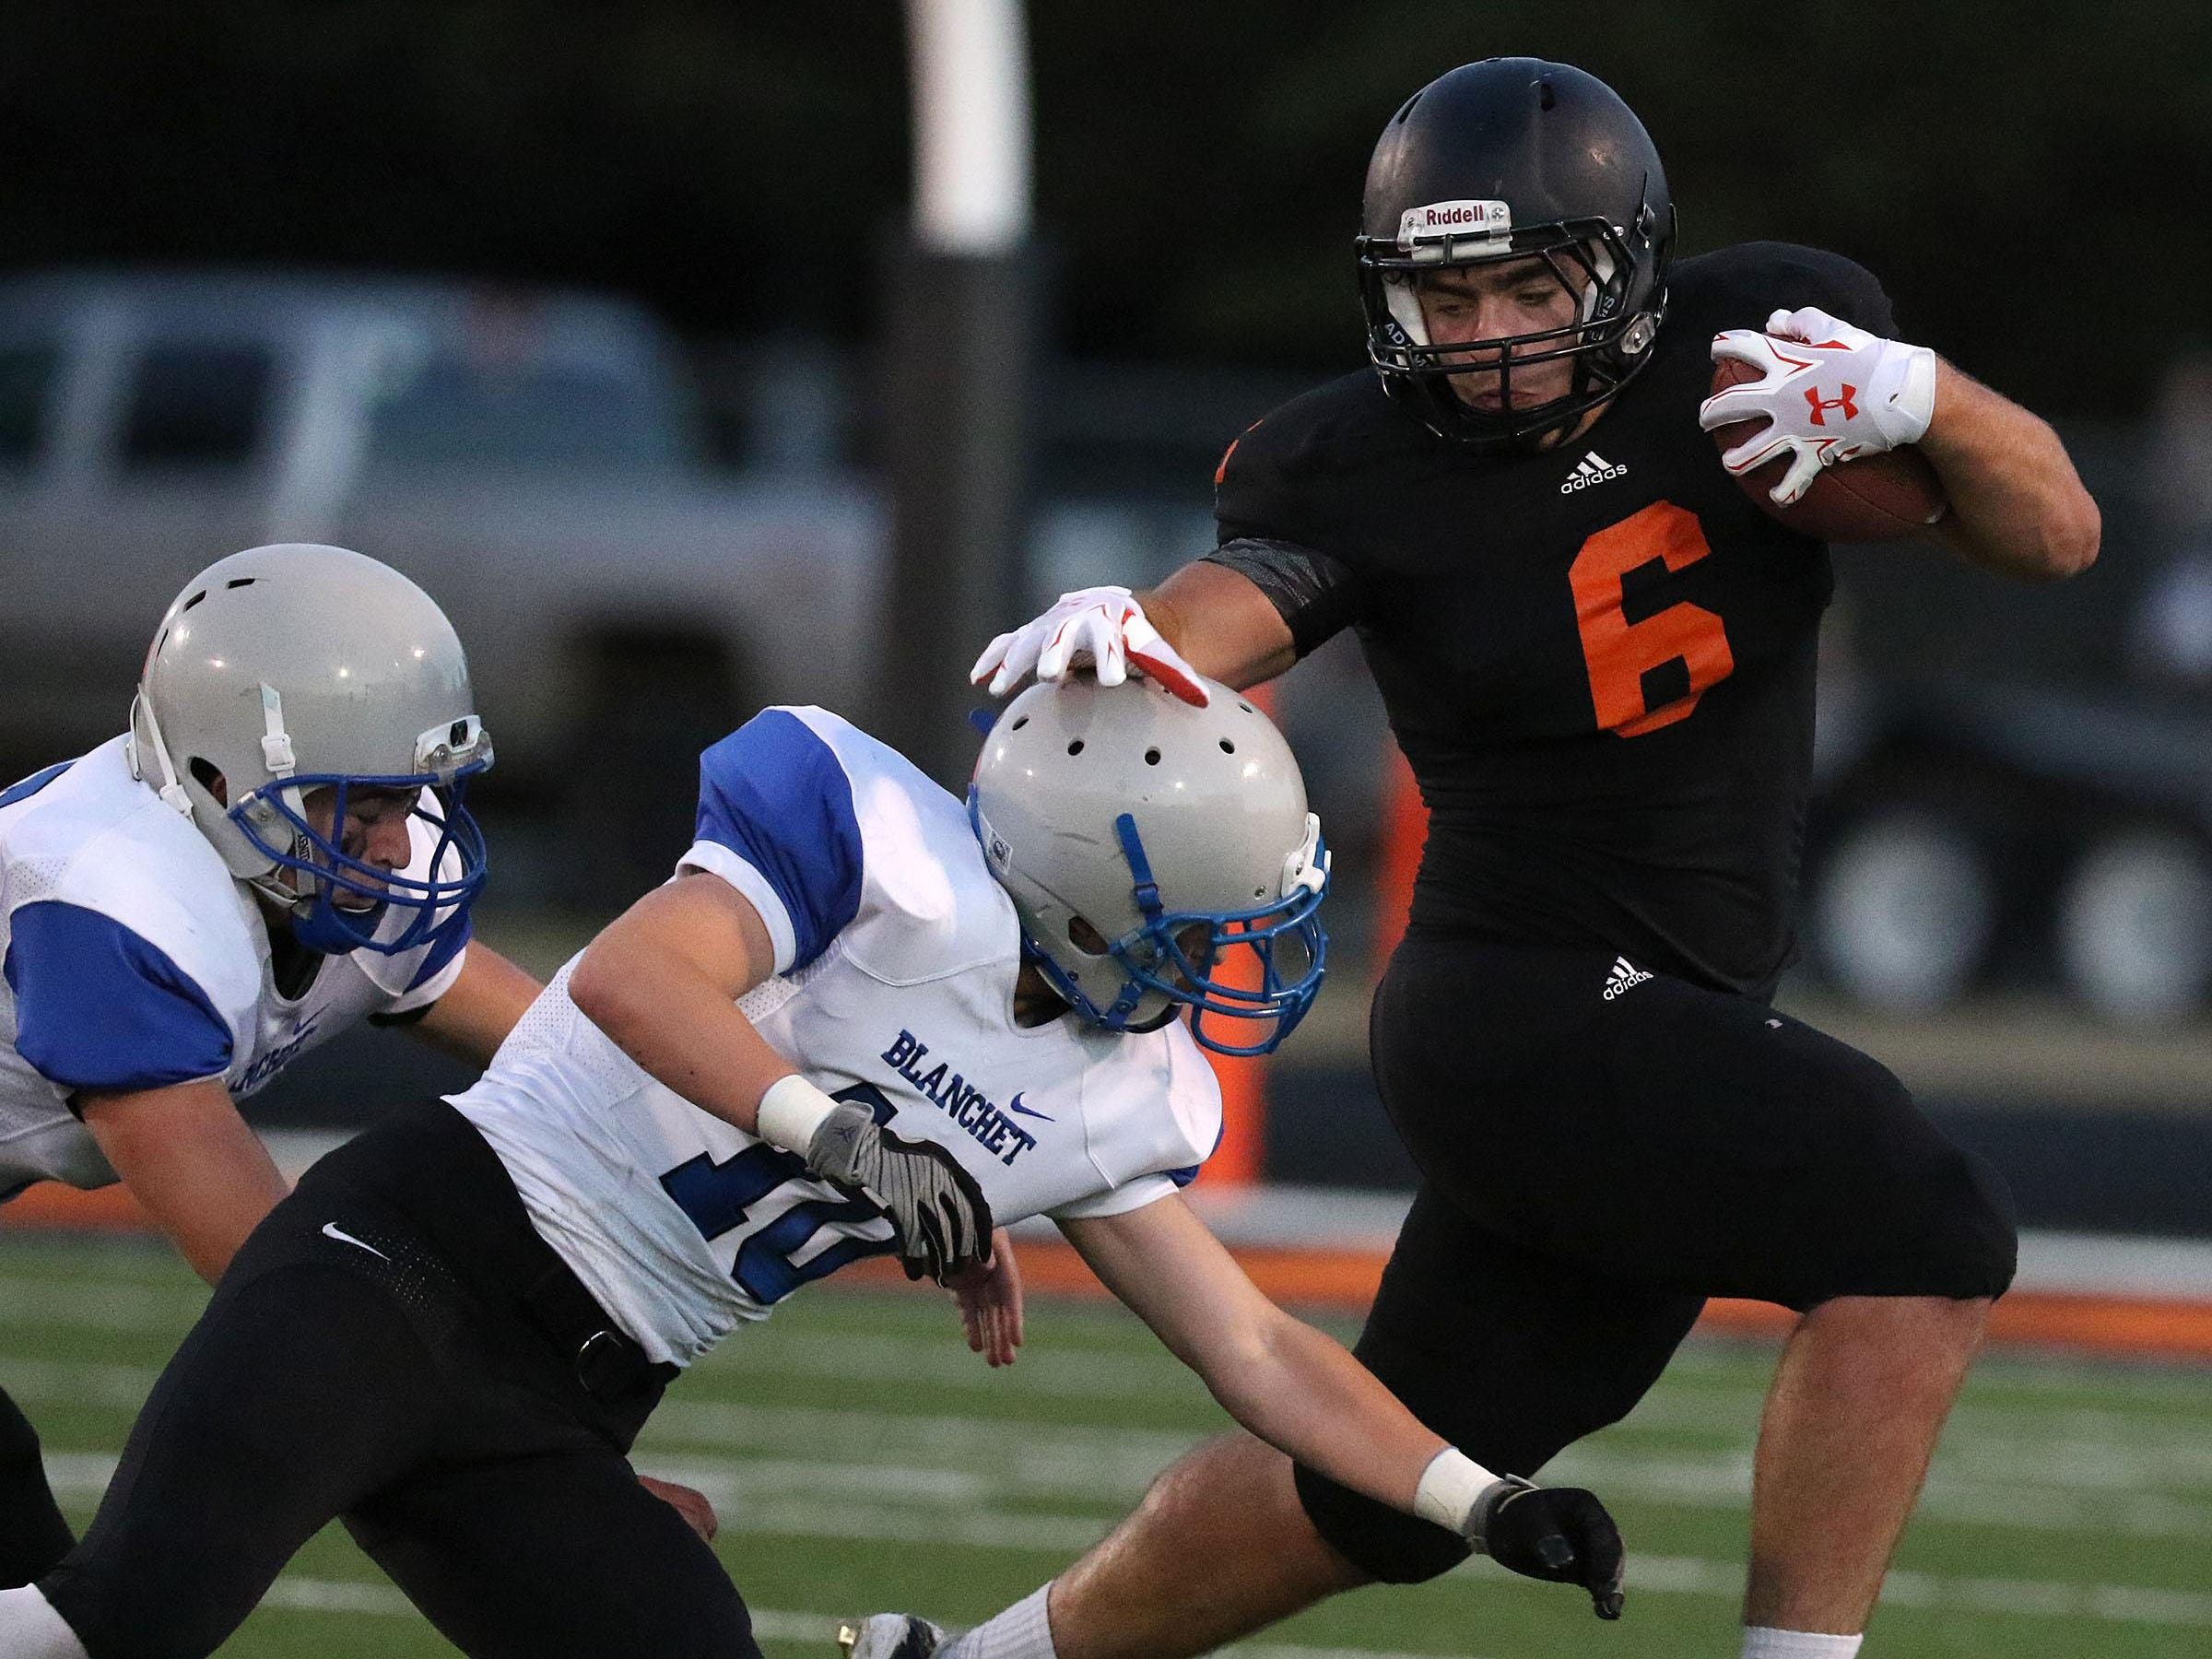 Scio's Dillion Robinson runs the ball during their game with Blanchet on Friday, Sept. 18, 2015, in Scio, Ore.